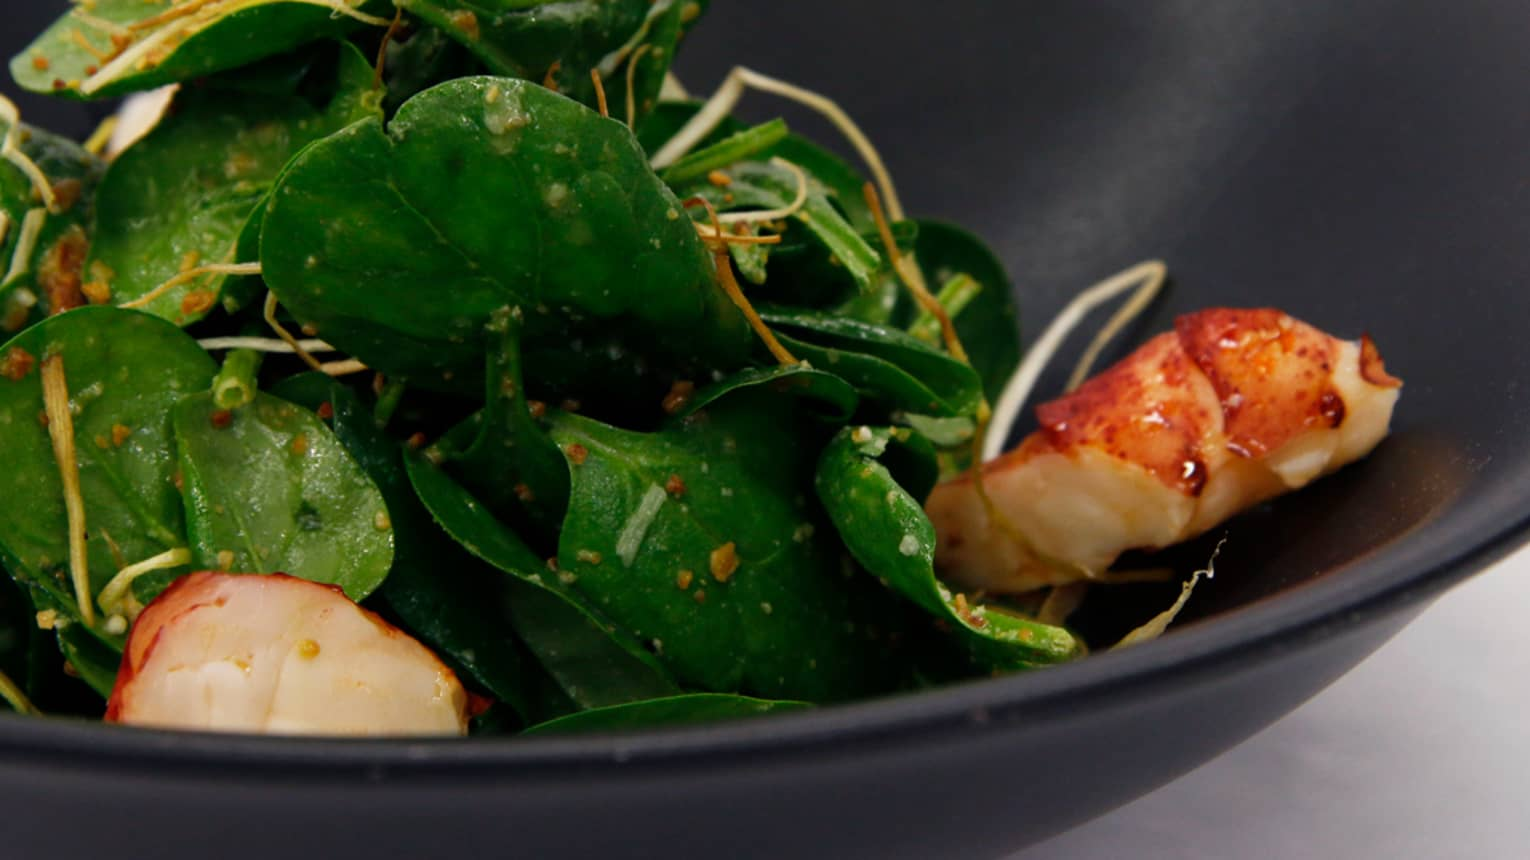 Close-up of Lobster and Spinach Salad with chunks of lobster meat with green leaves, vinaigrette